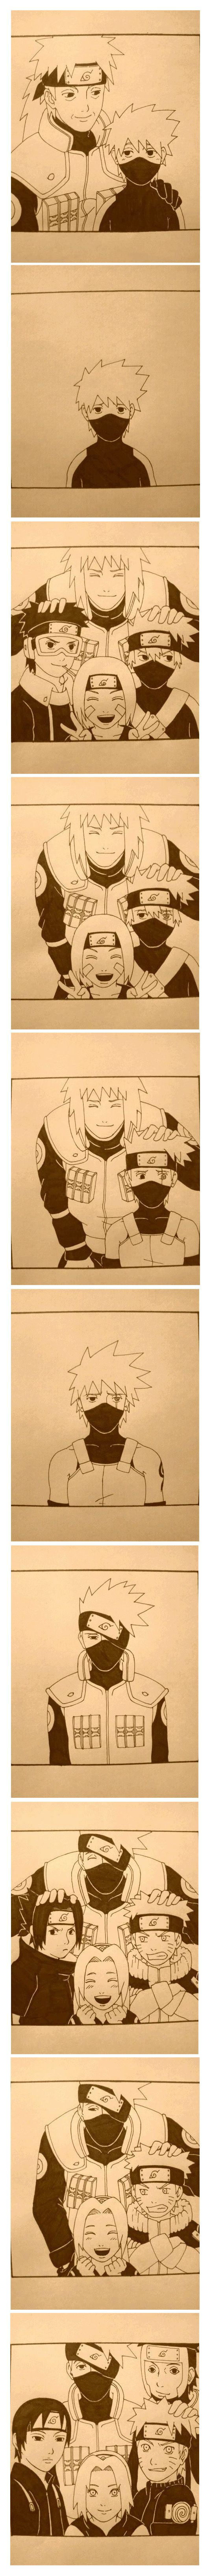 Kakashi Story, I feel so sad for him :( :( :( We are here for you Kakashi <3 <3 T^T: